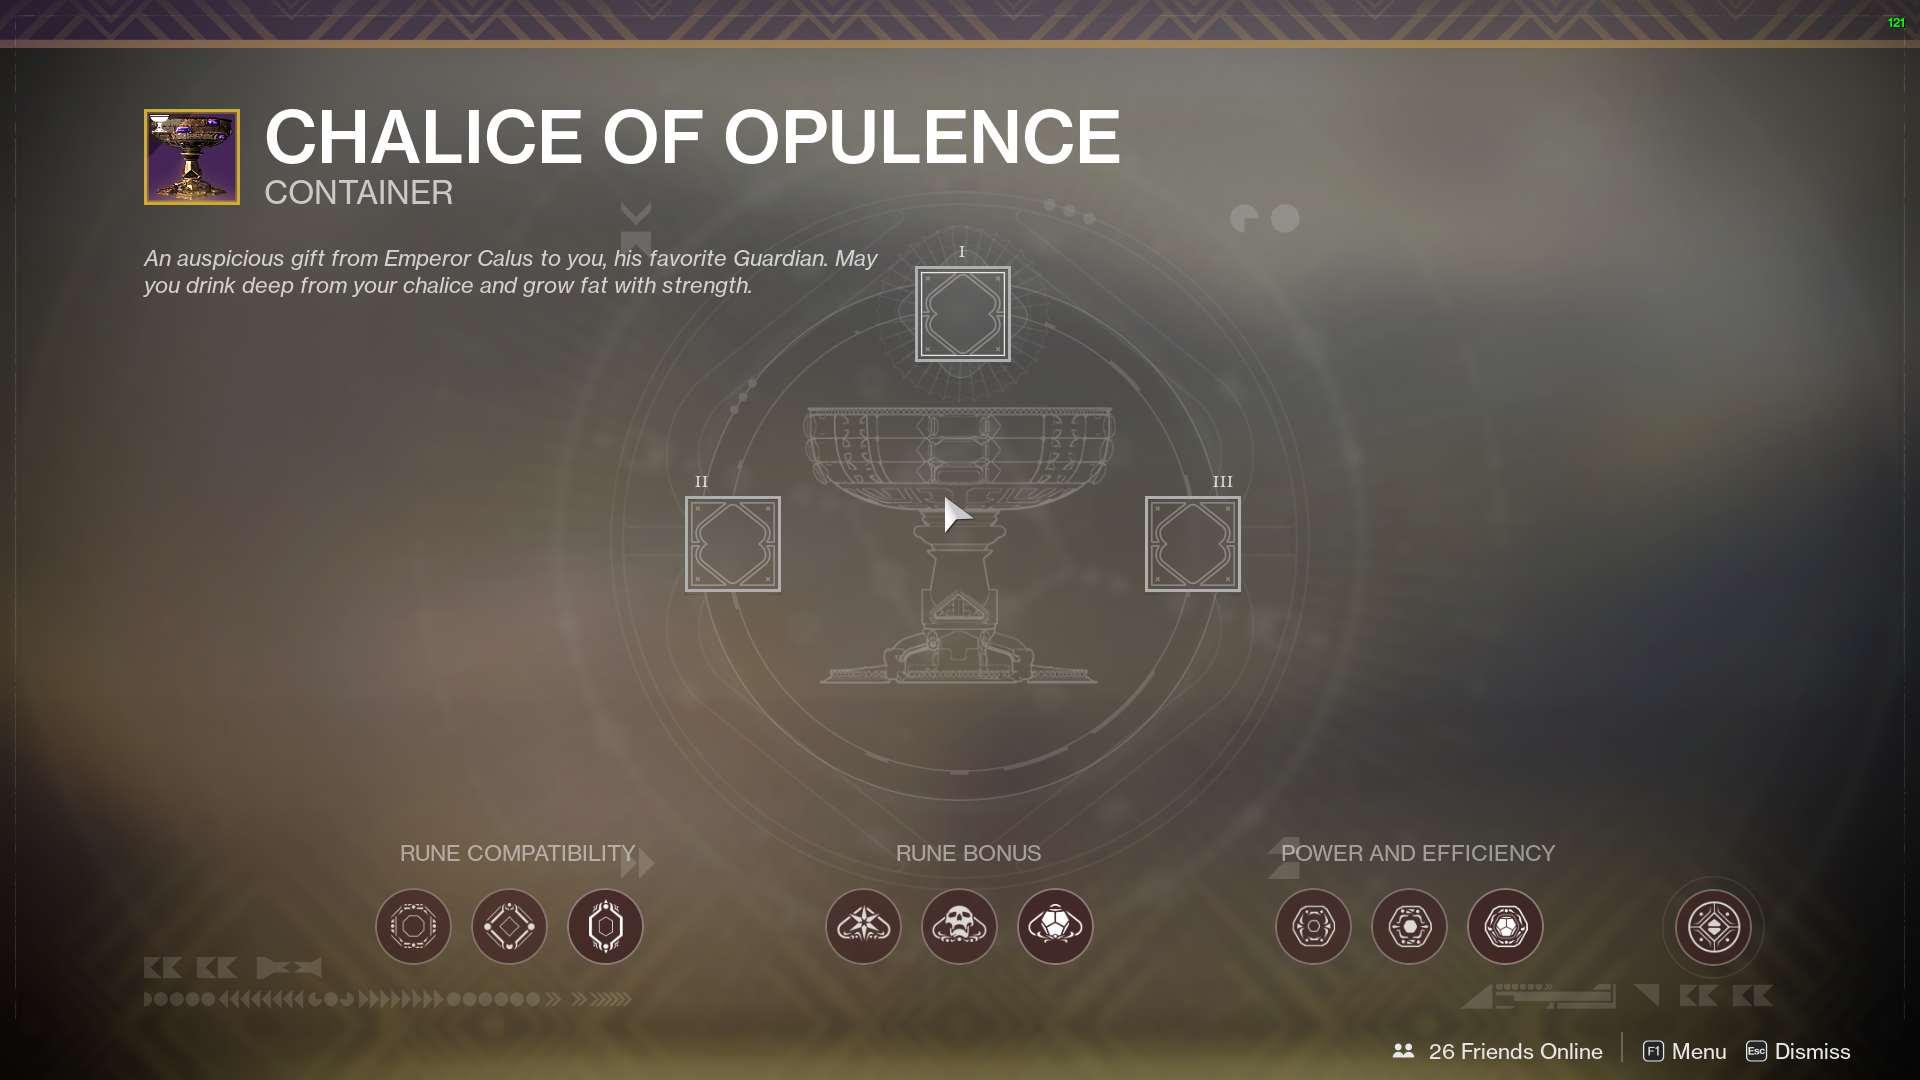 ultimate-chalice-of-opulence-combinations-guide-3